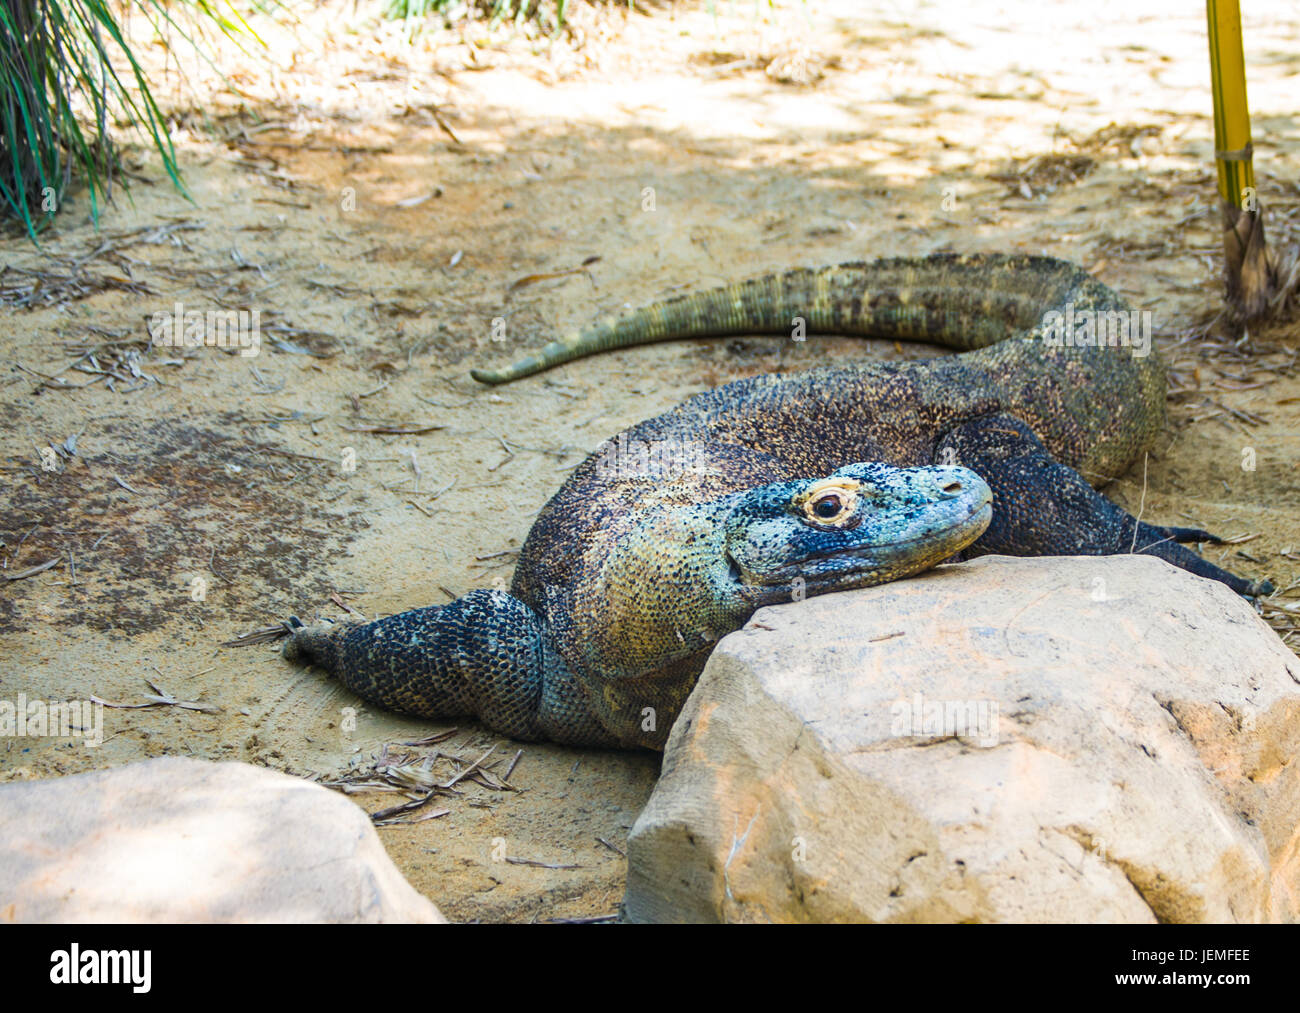 Komodo Dragon/ Bored Lizard / Lazy days of summer. - Stock Image